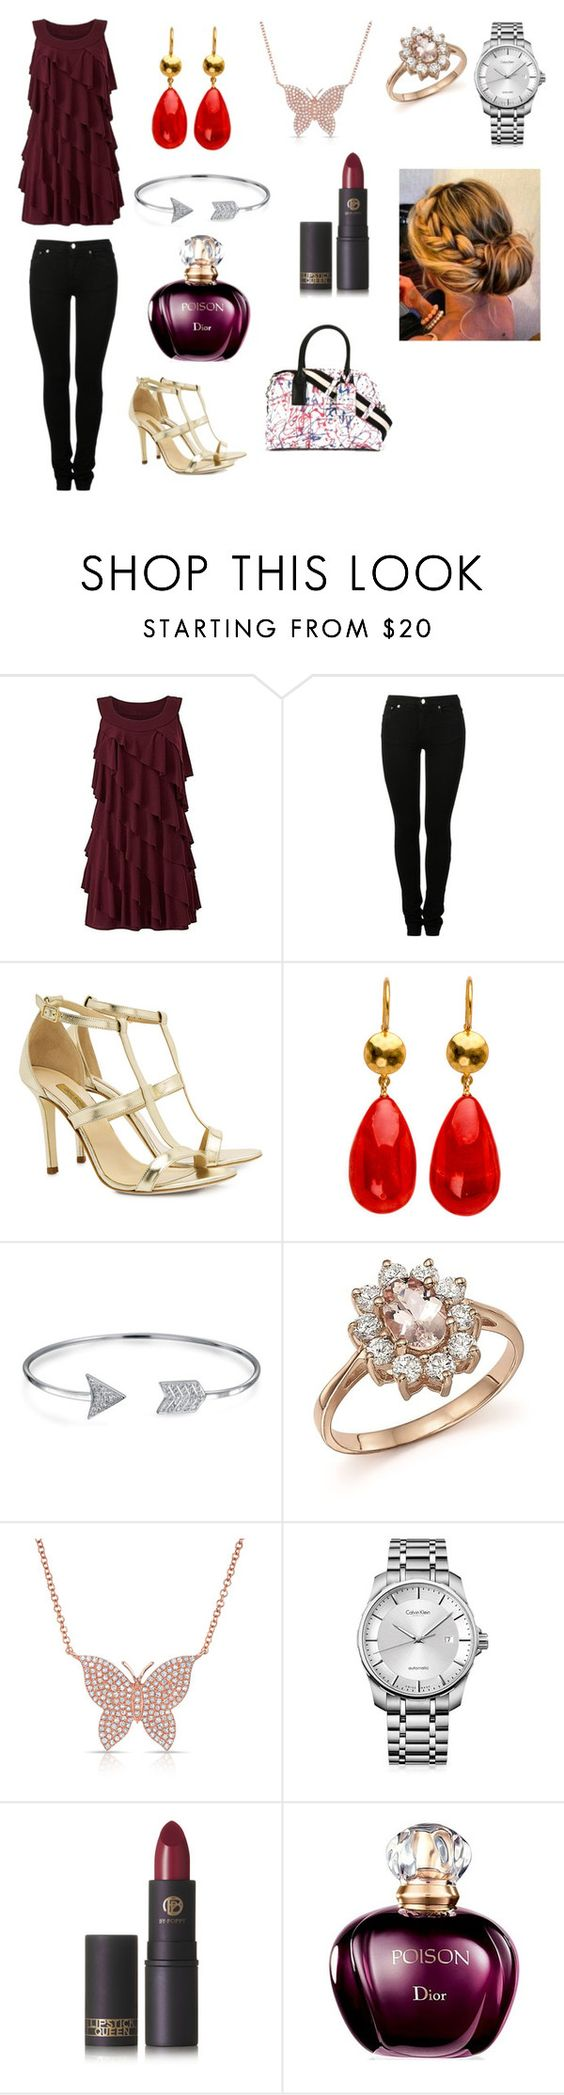 """King of Pain"" by madhura-datar on Polyvore featuring MM6 Maison Margiela, Dee Keller, Bling Jewelry, Bloomingdale's, Anne Sisteron, Calvin Klein, Lipstick Queen and Marc Jacobs"